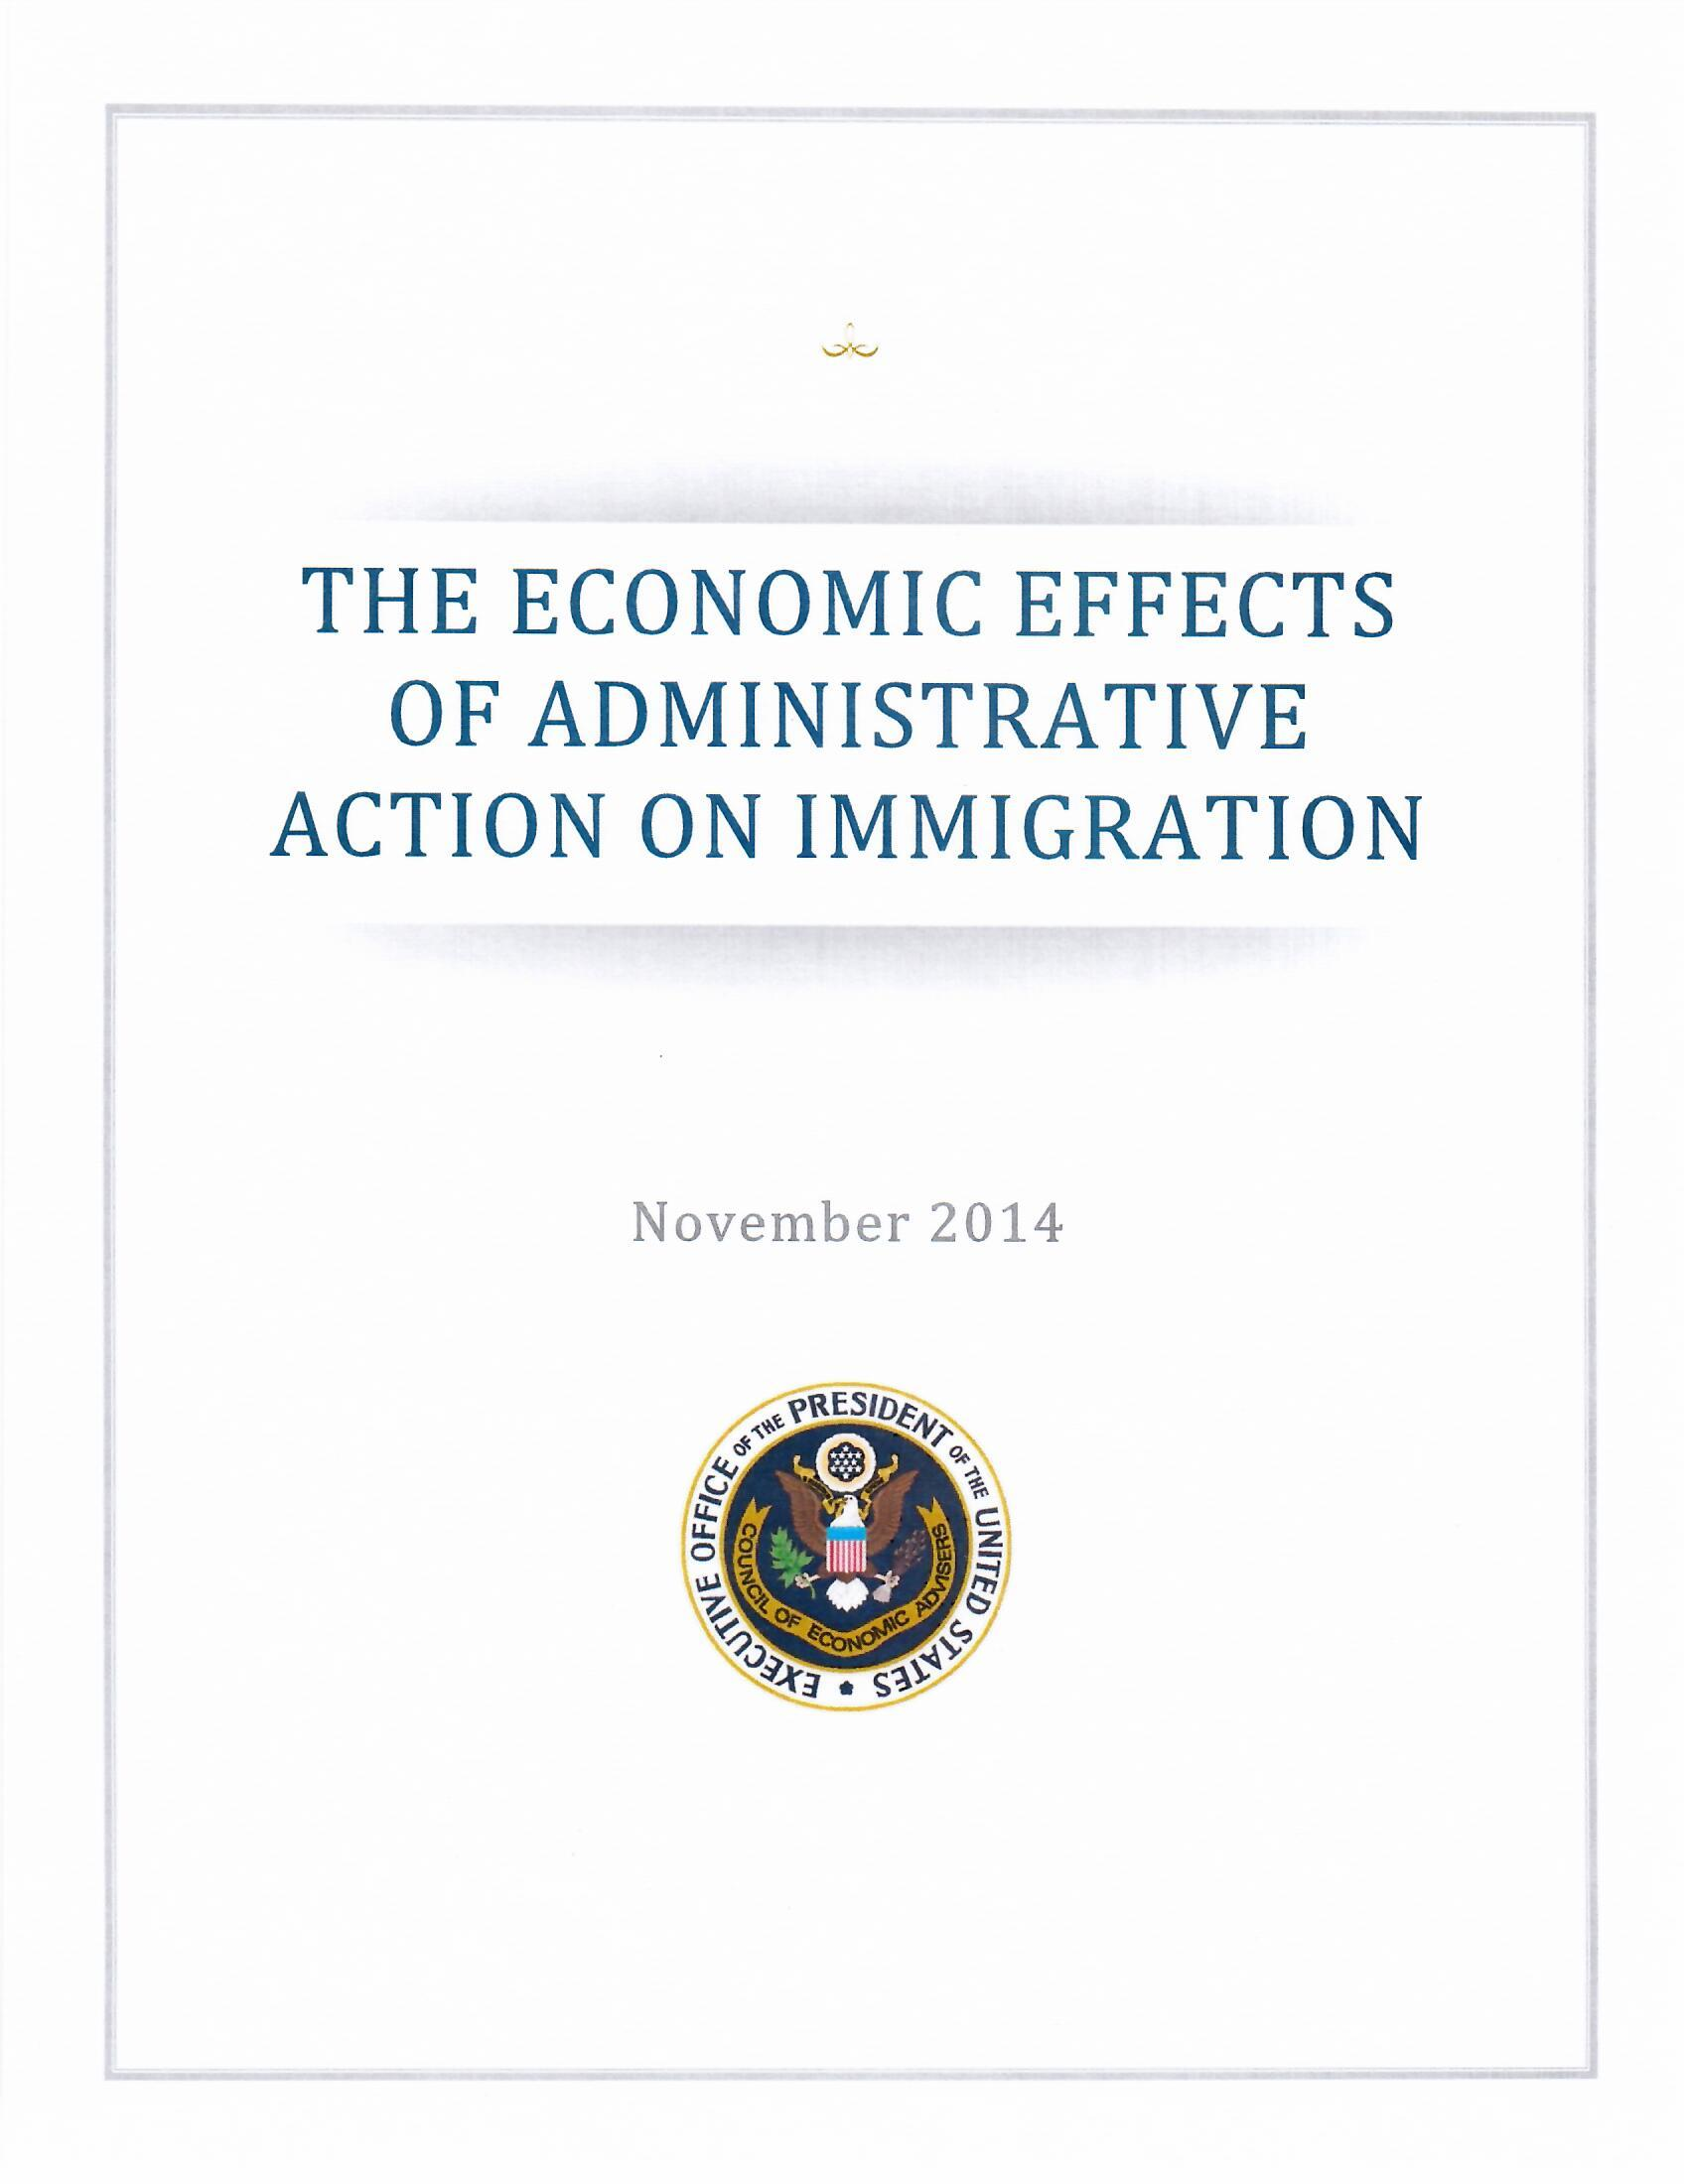 Image of economic effects of President Obama's Executive Action on Immigration